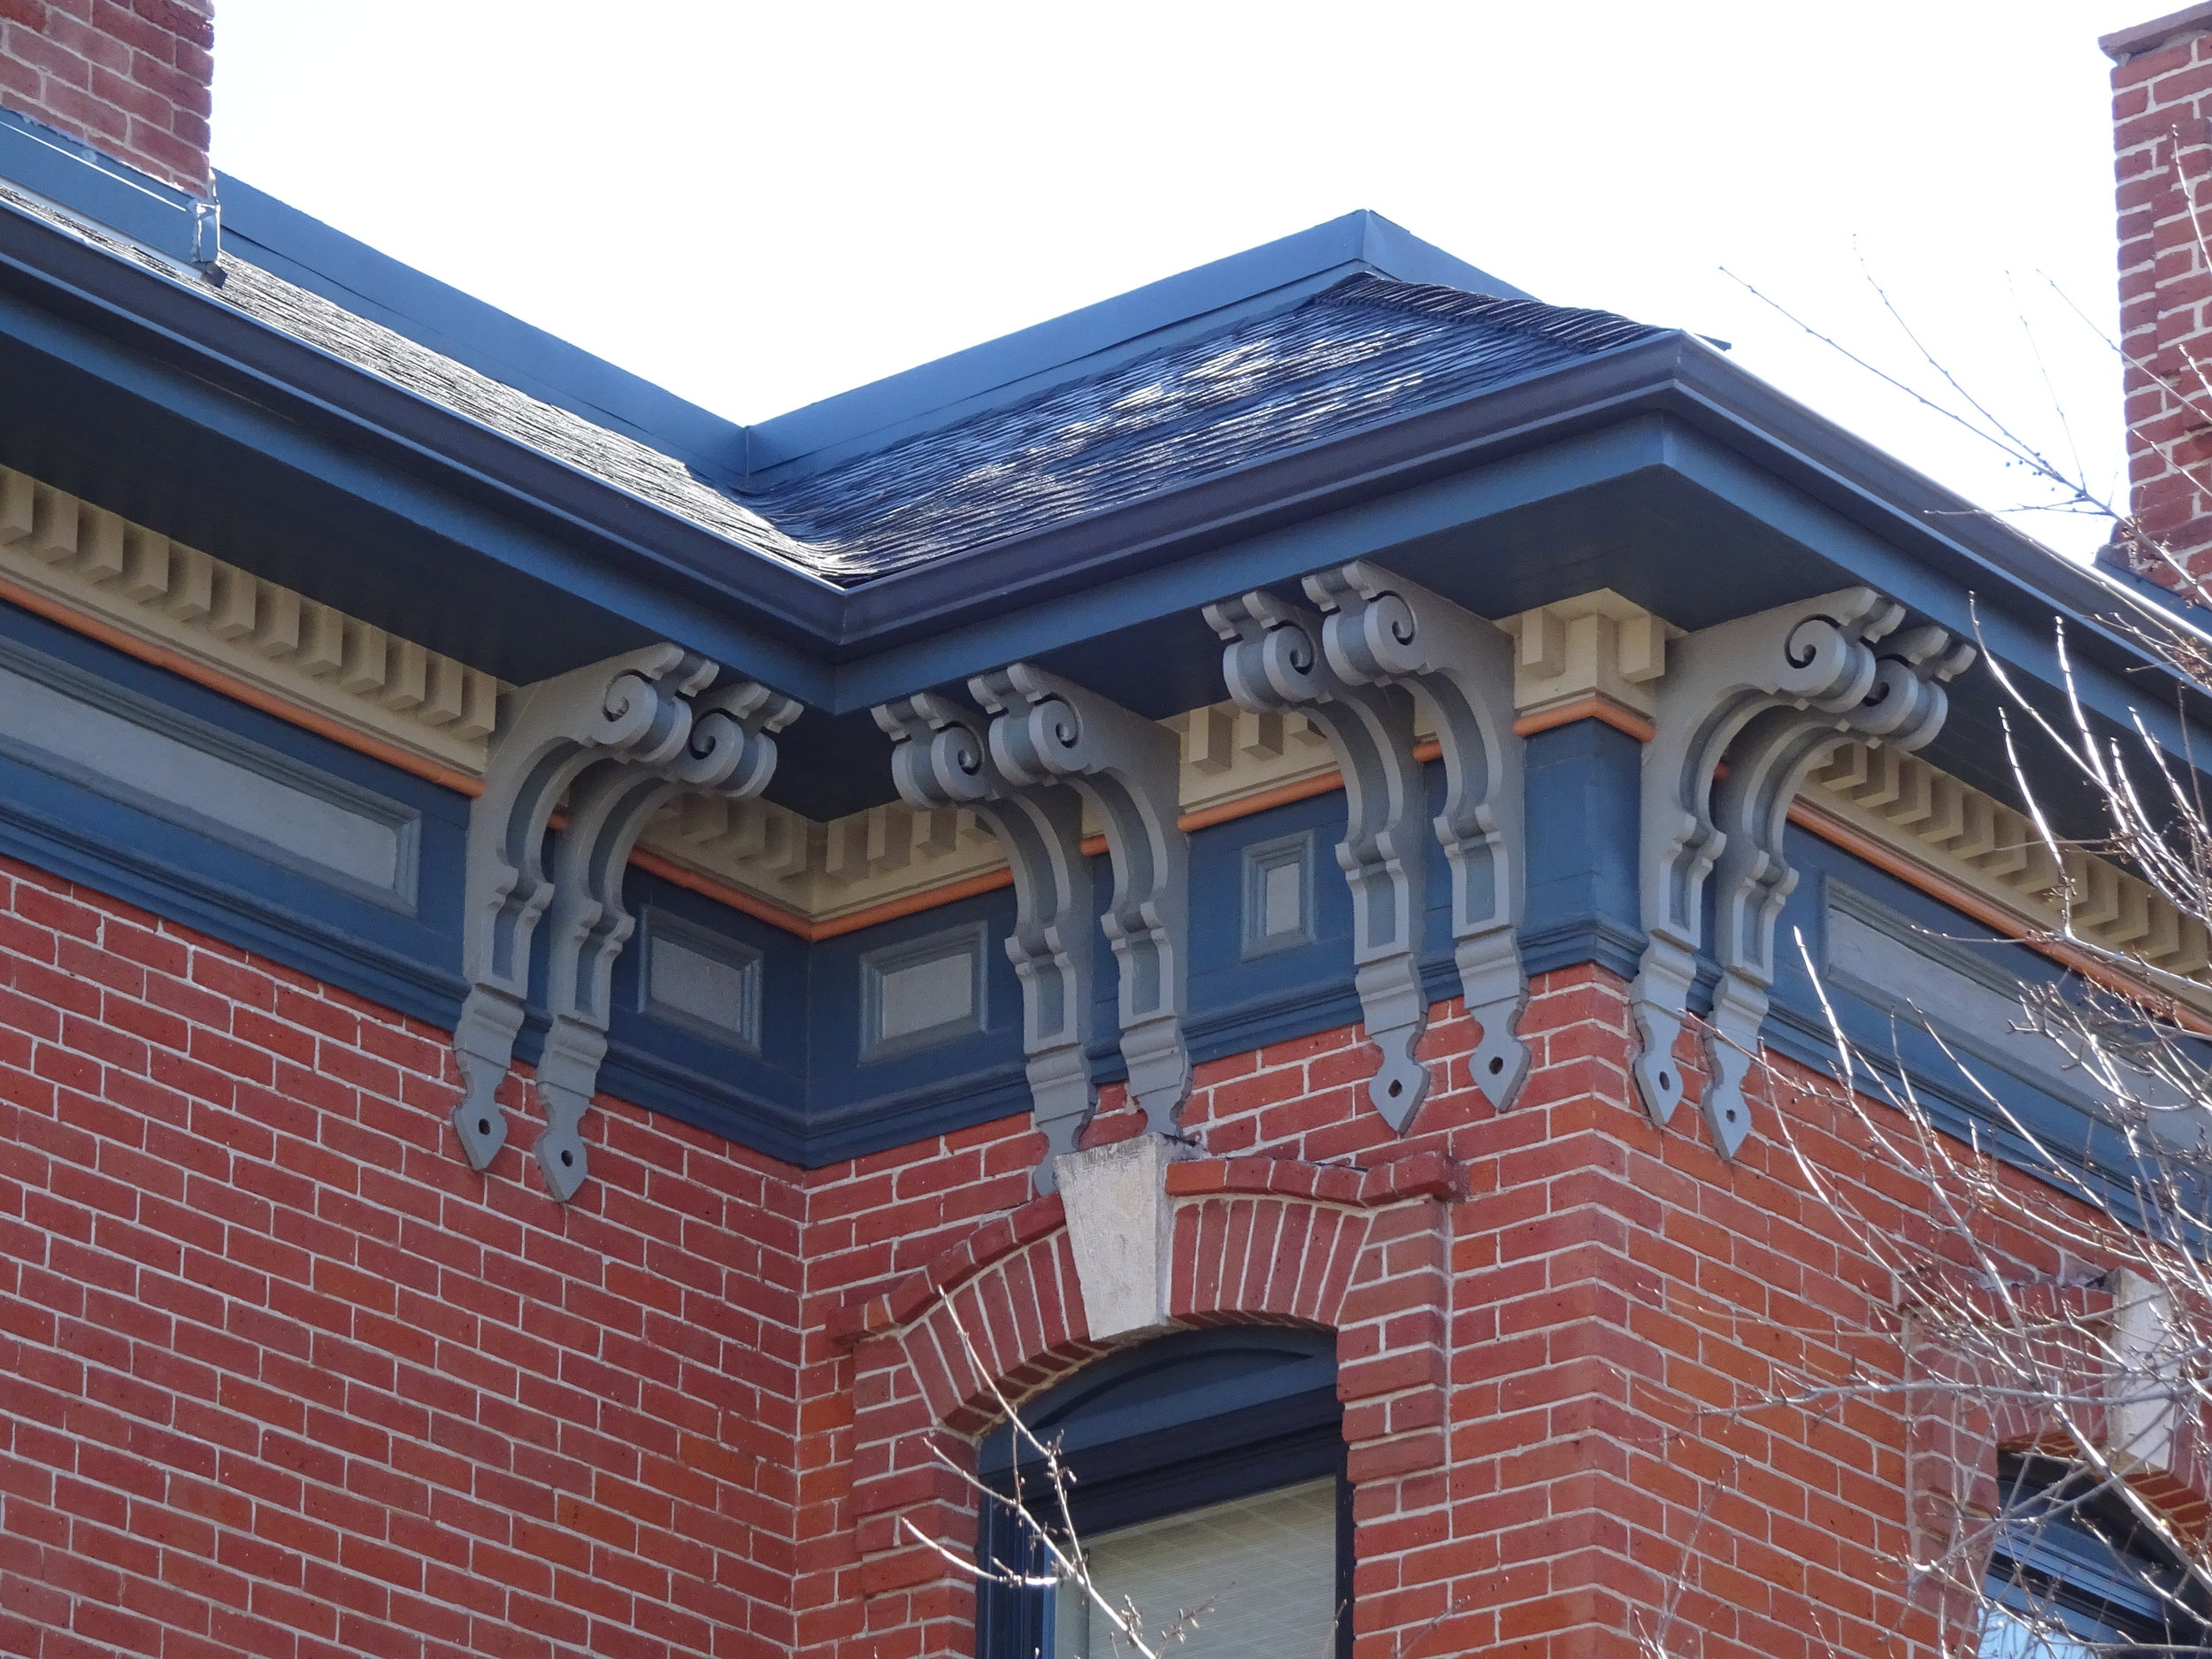 Wood Trim - Most historic residences in Curtis Park have attached wooden decoration, such as roof cornices and gable ends with shingled ornamentation.